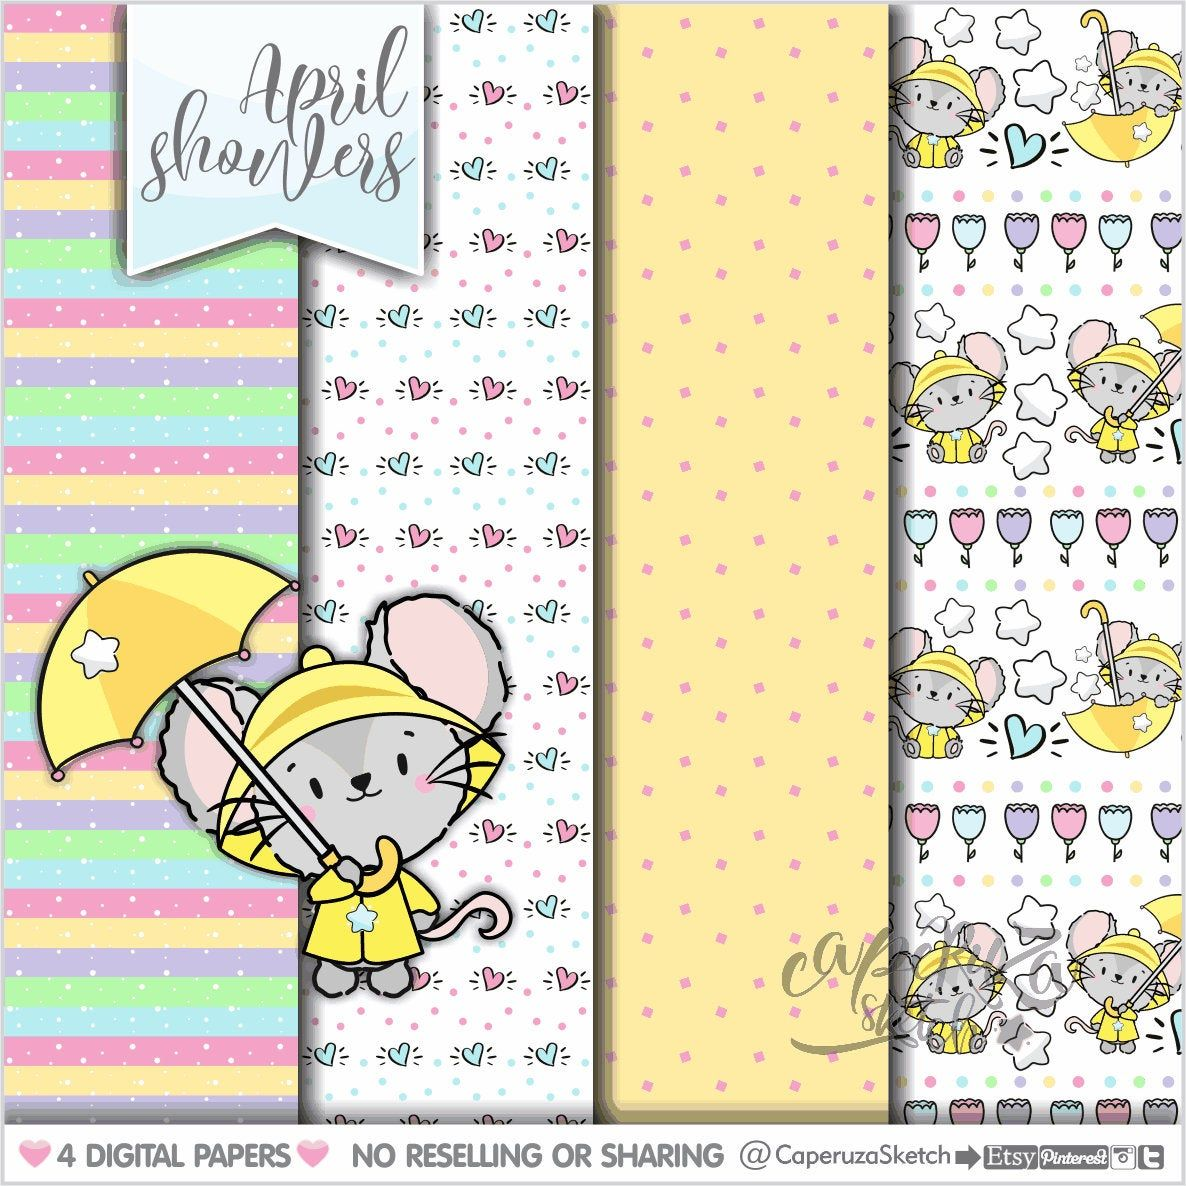 Mugs Digital Papers Animal Patterns Animal Digital Papers Deer Spring Digital Papers Spring Patterns Wolf Bear COMMERCIAL USE